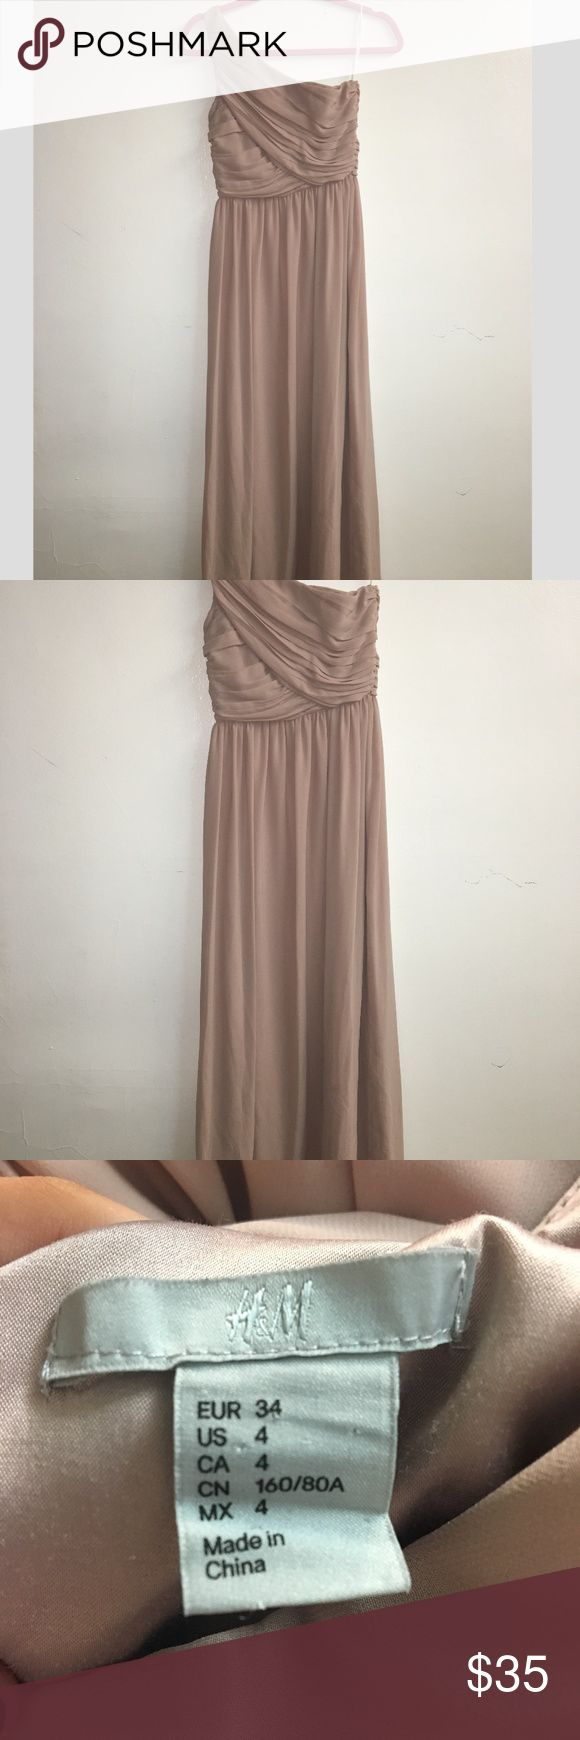 H&M Bridesmaid Dress Classy pinkish/champage dress to wear to prom, as a bridesmaid, or any party at all! Small cut and has some stains on the bottom that can be cut off because its really long. Was dry-cleaned right after it was worn. H&M Dresses Maxi